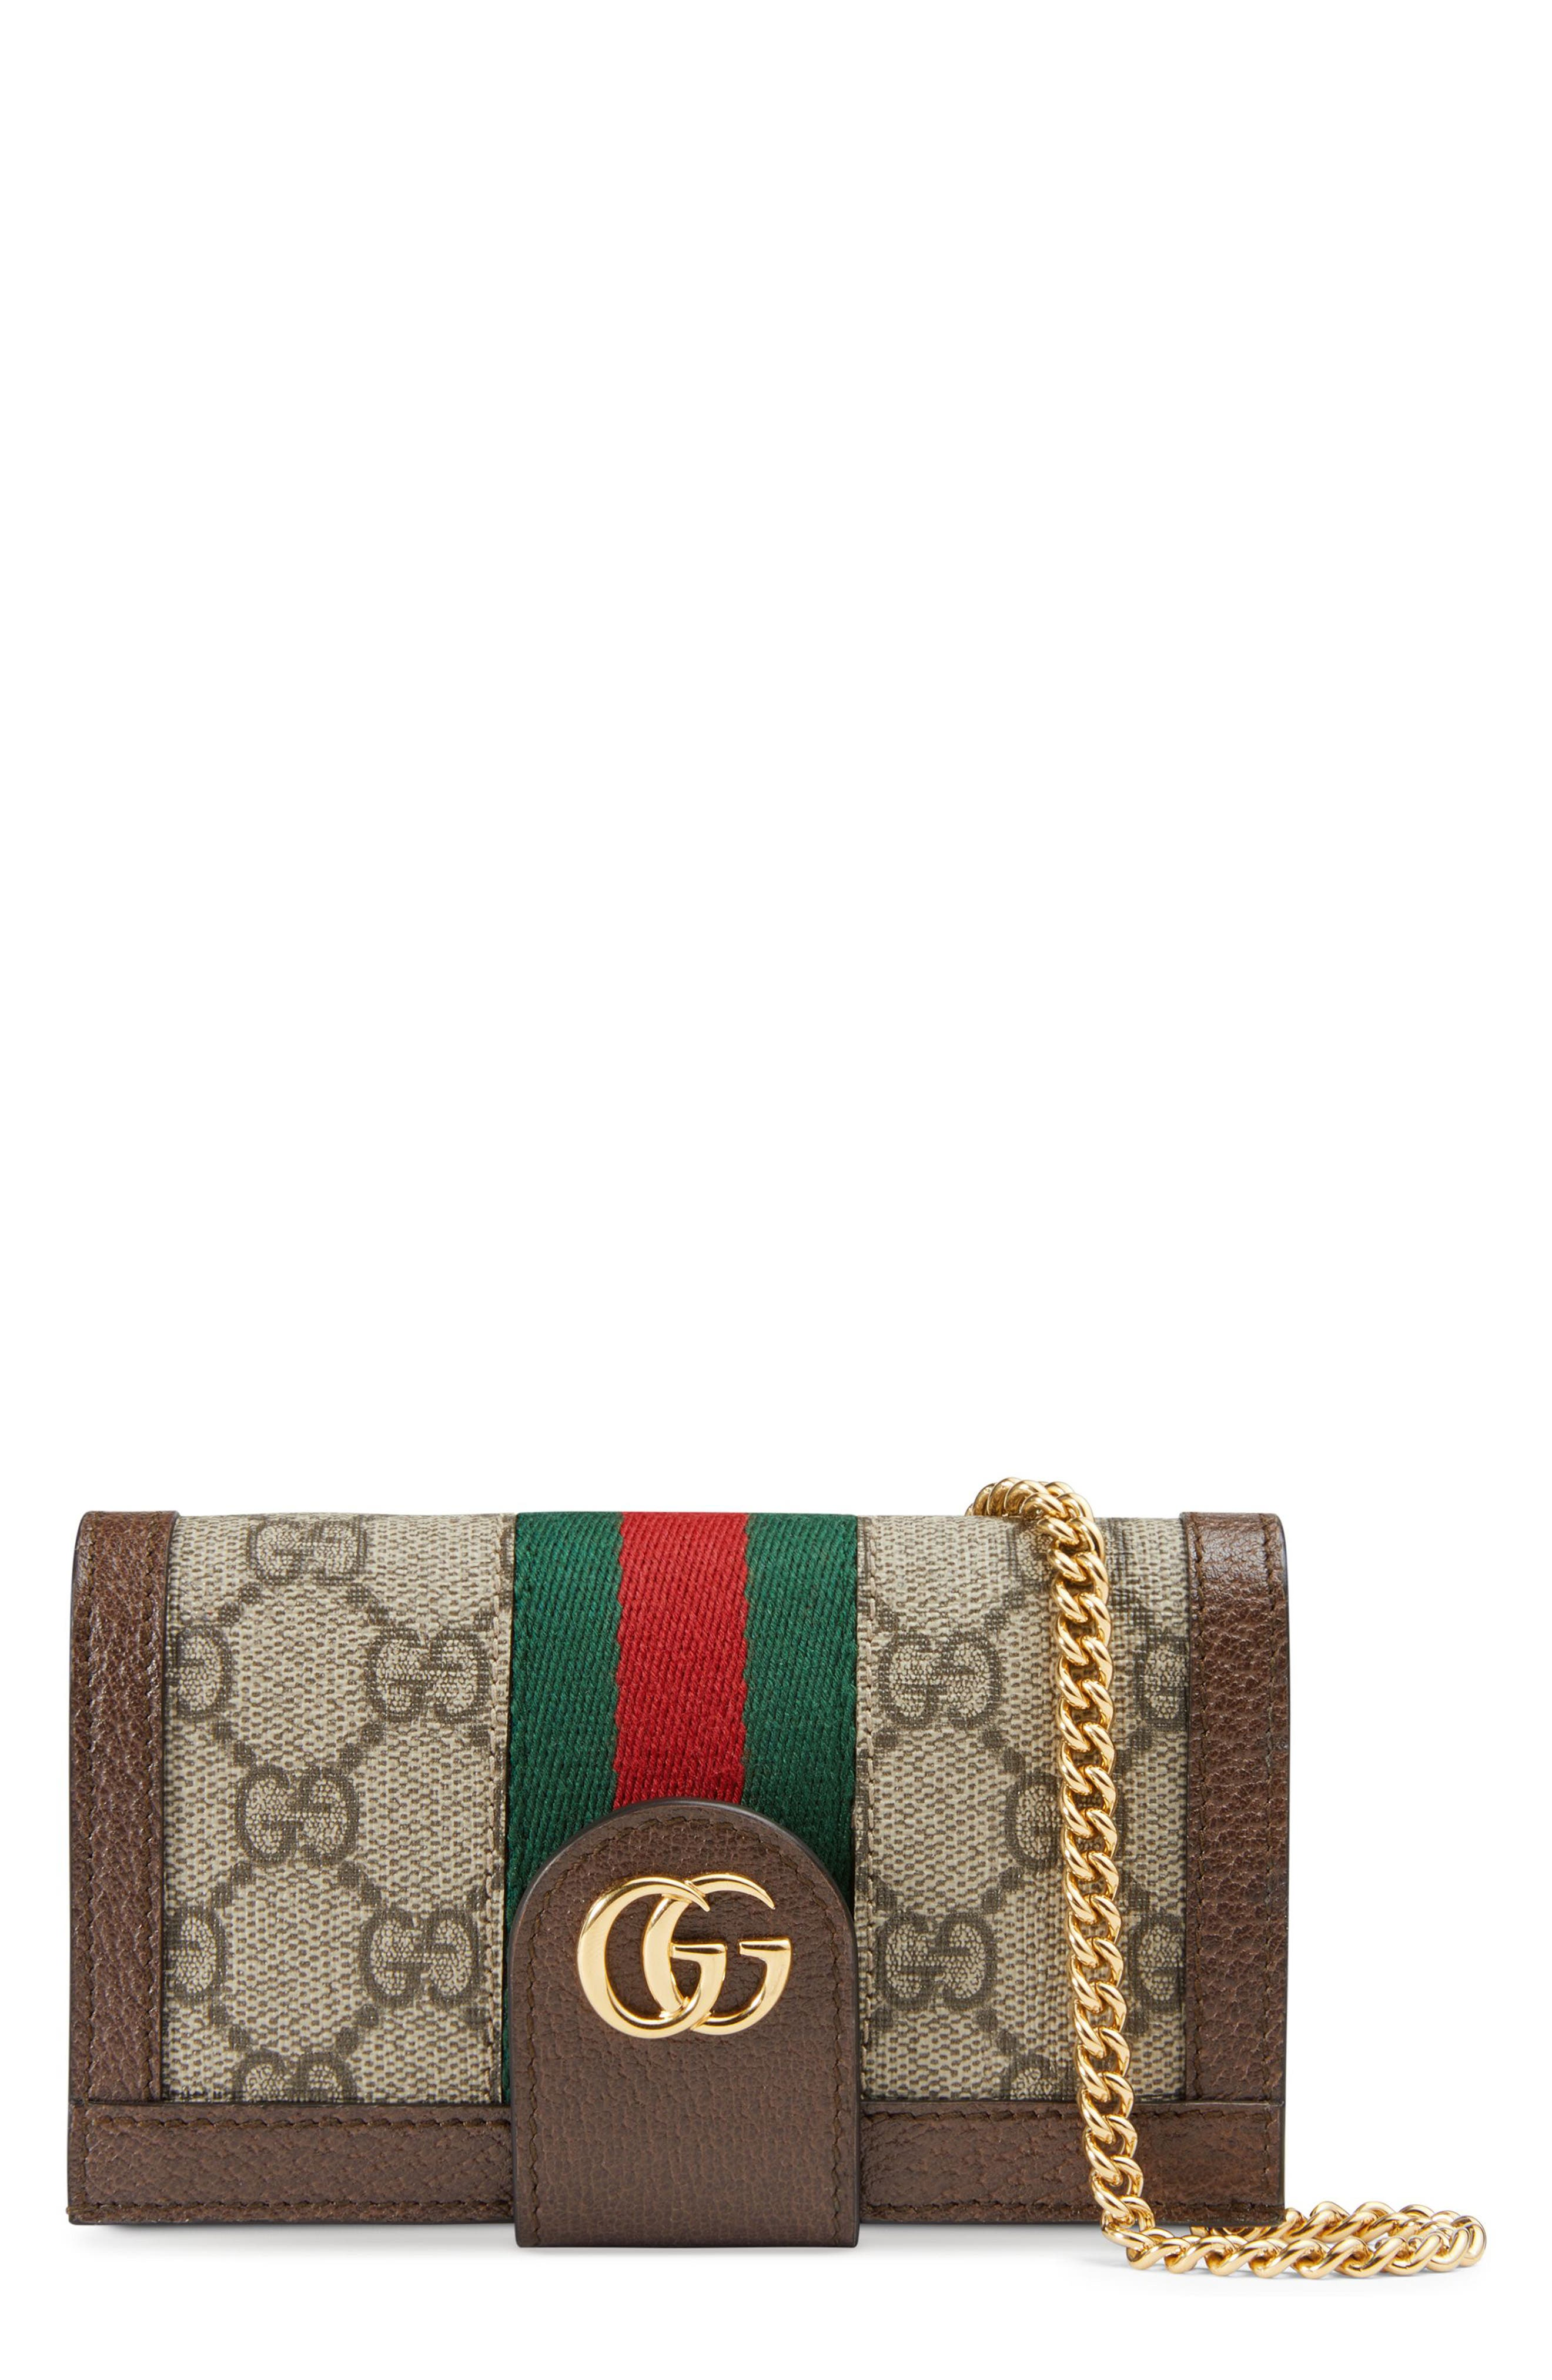 GUCCI Ophidia GG Supreme iPhone 7/8 Case, Main, color, BEIGE EBONY/ ACERO/ VERT RED